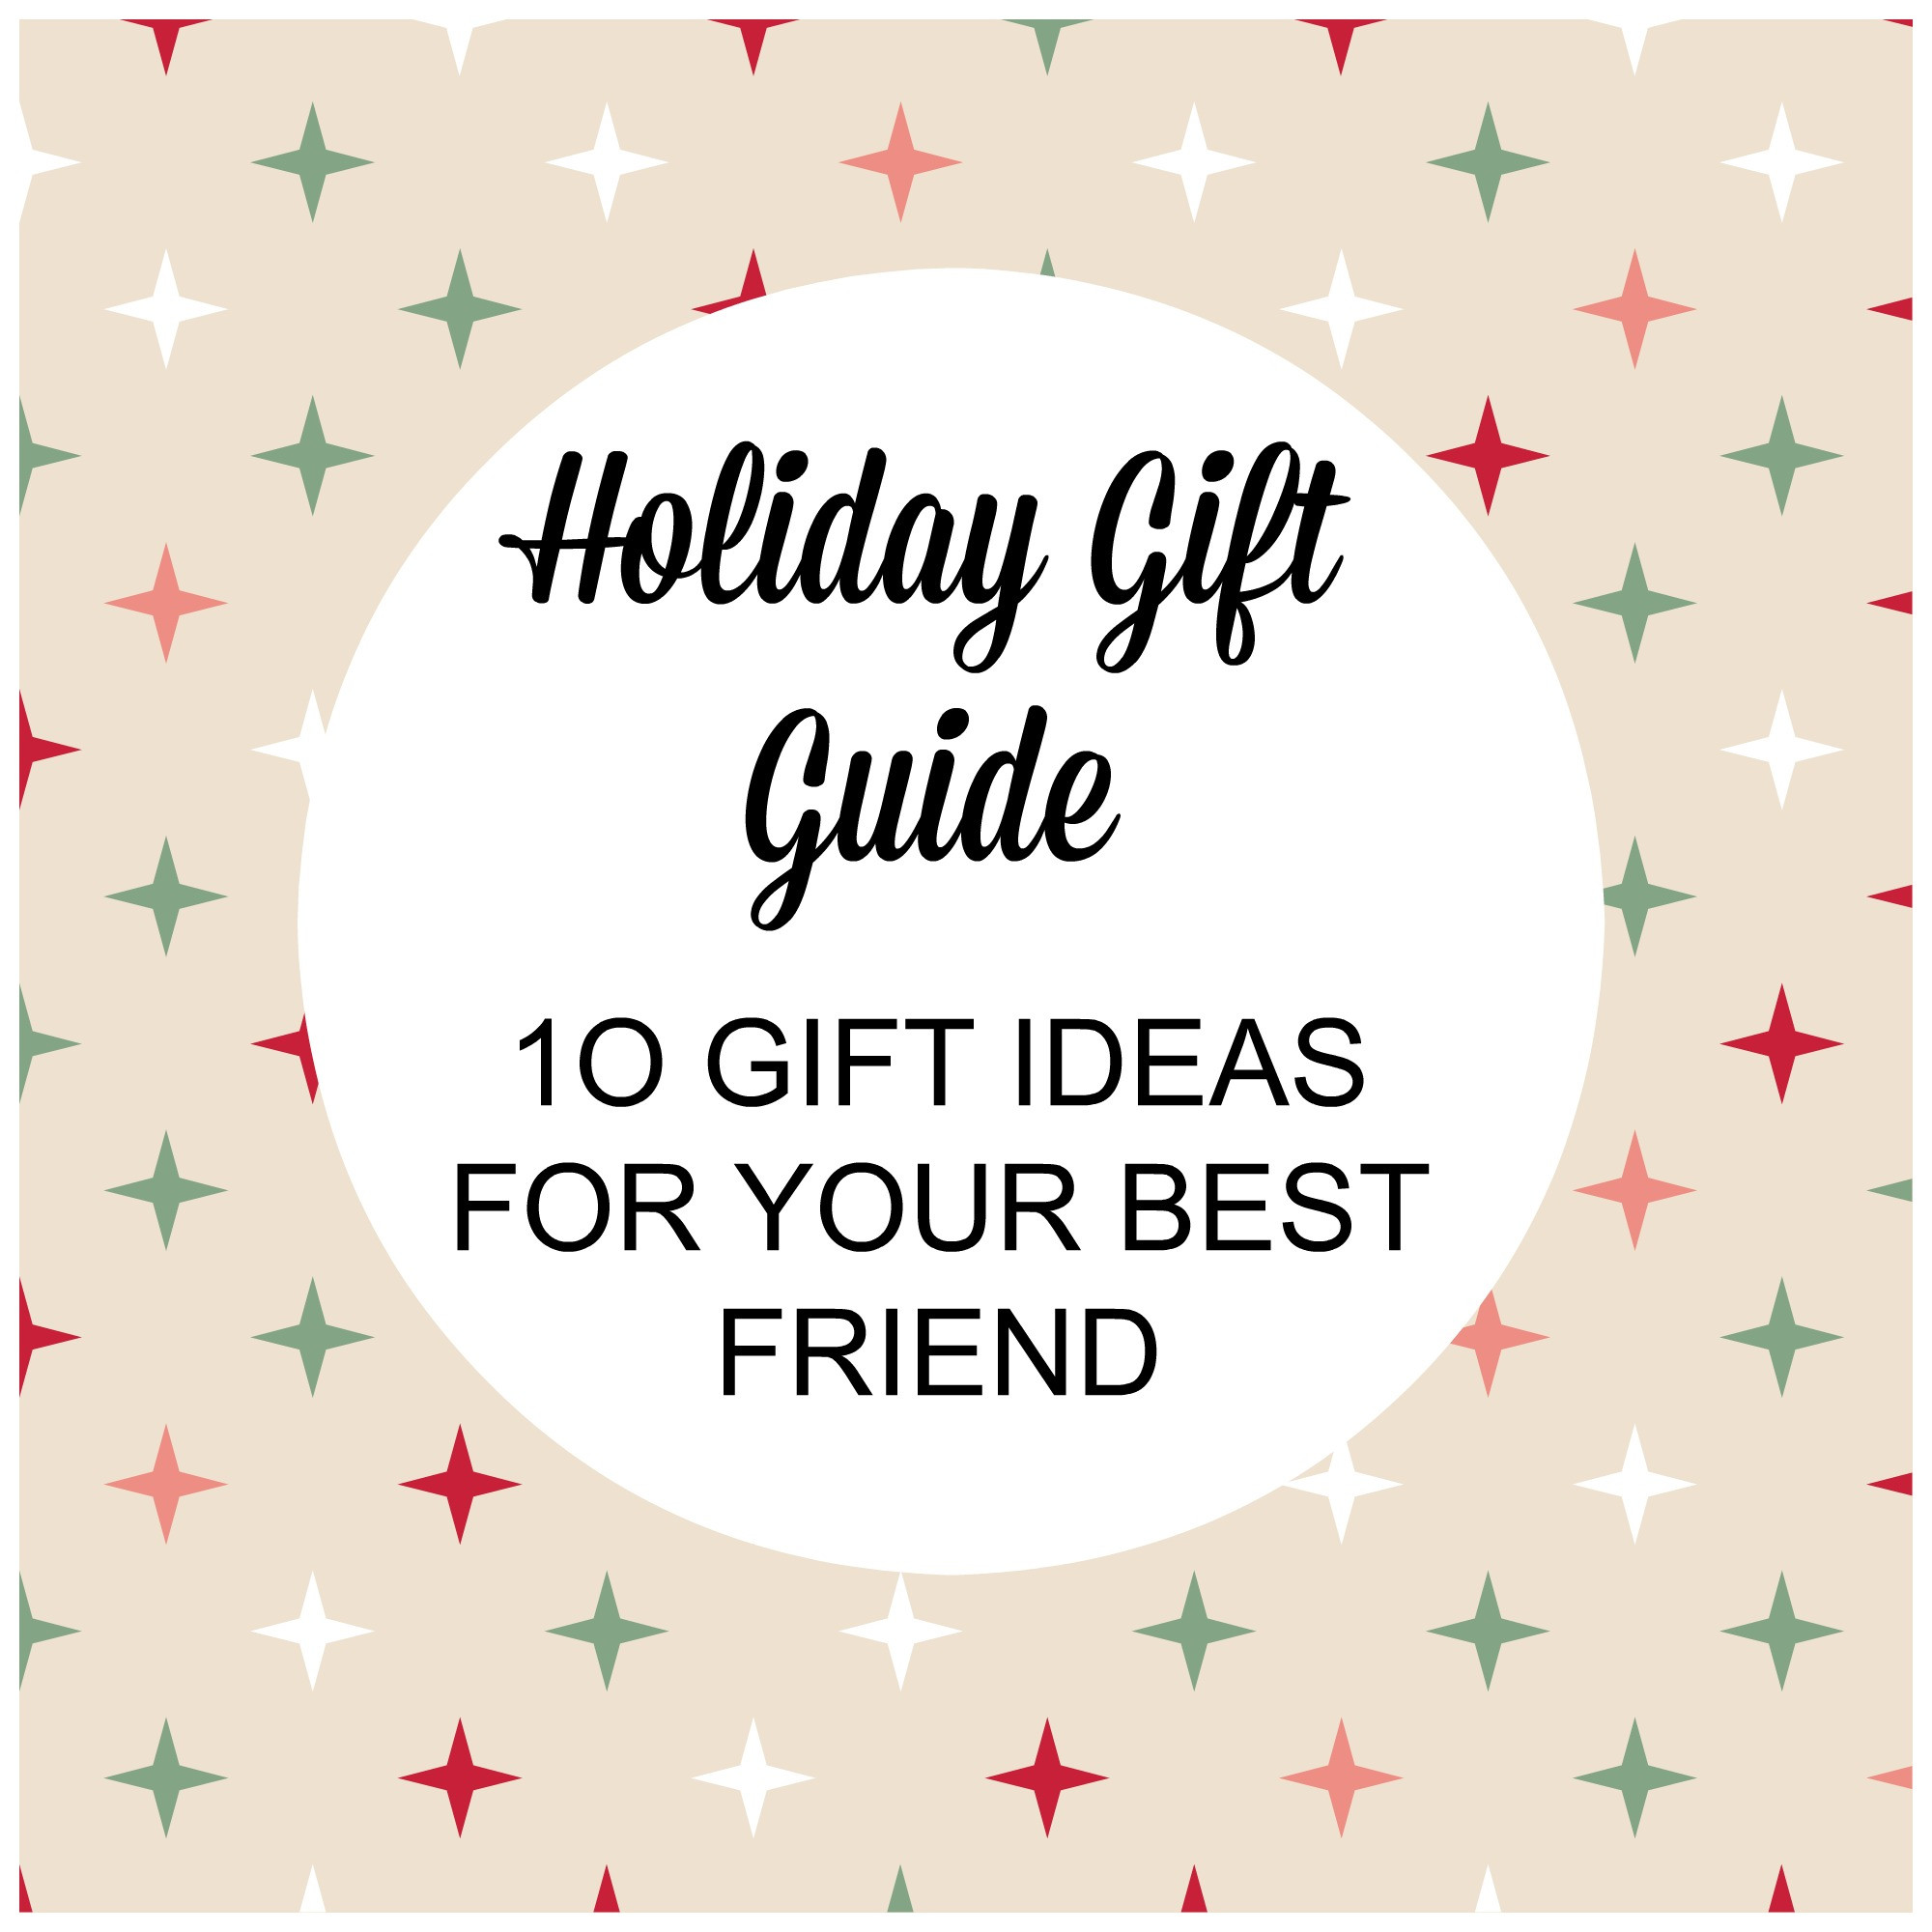 Christmas Gift Ideas For Your Best Friend  Holiday Gift Guide 10 Gift Ideas for your Best Friend